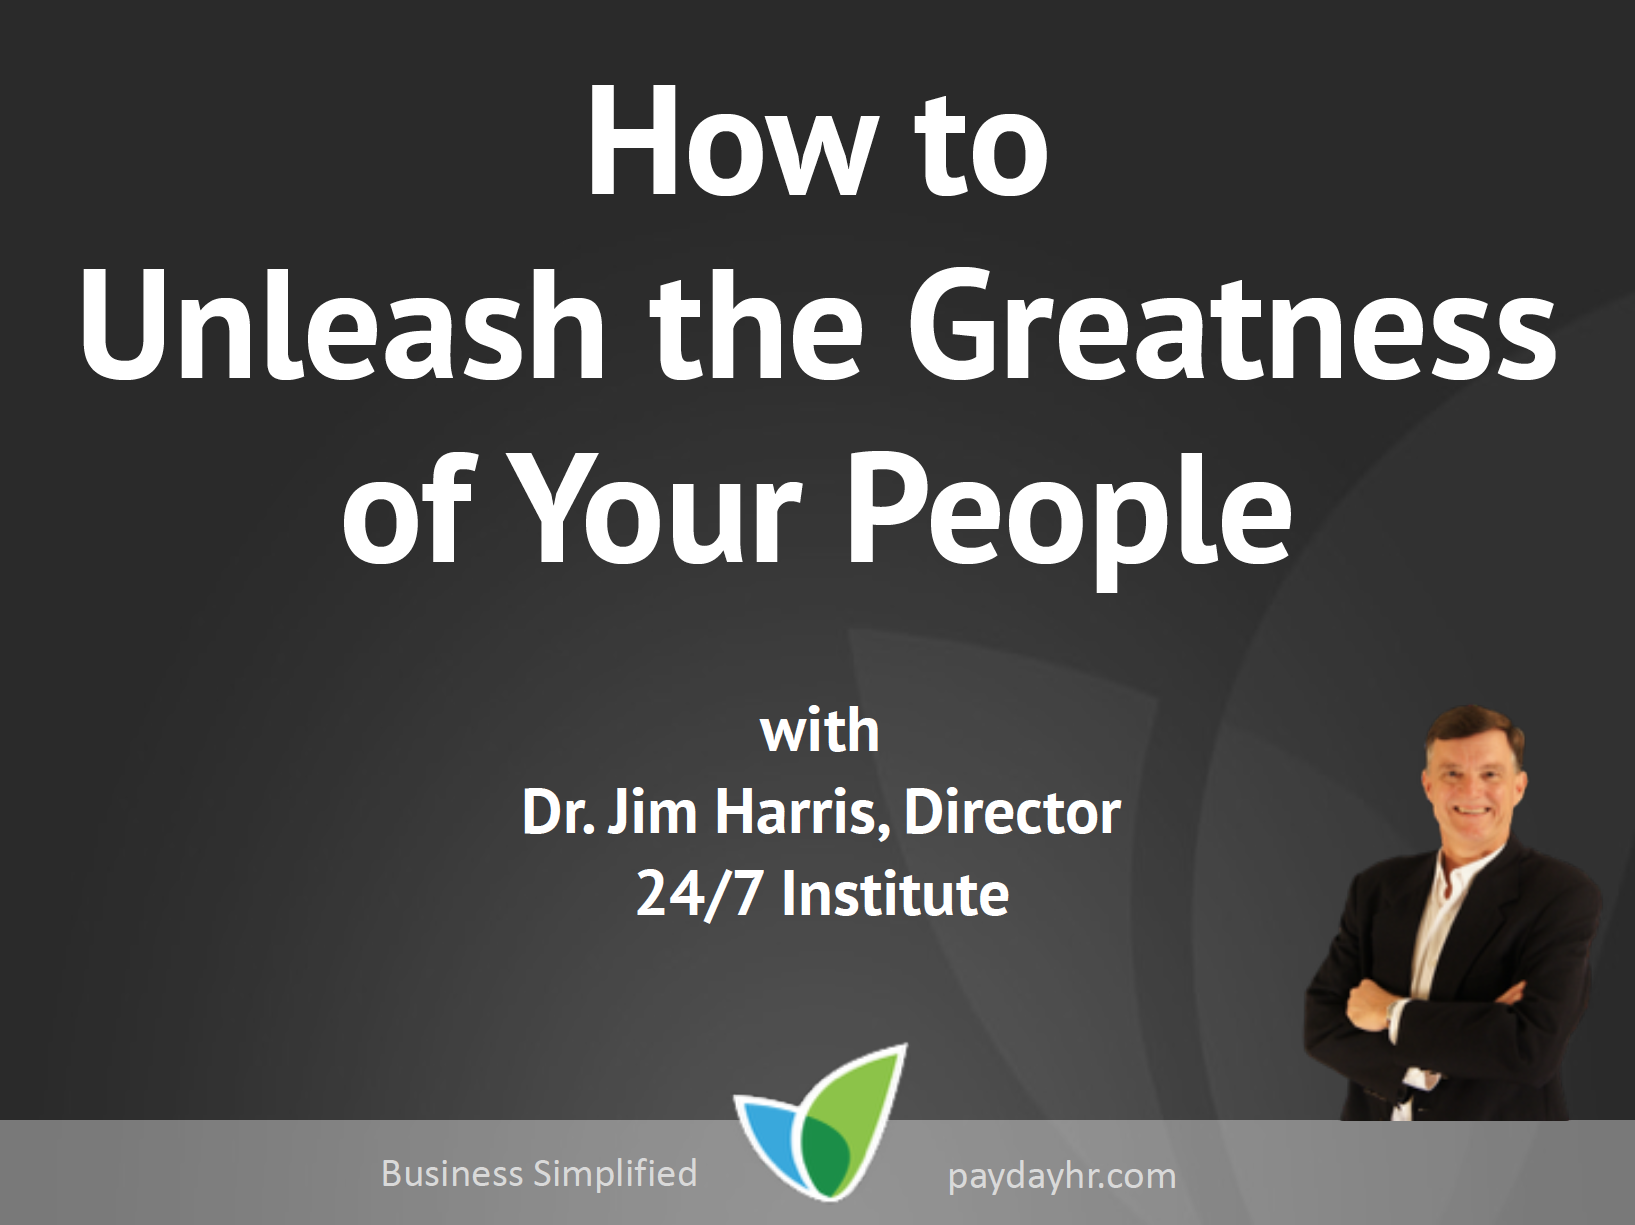 Unleash the Greatness of Your People